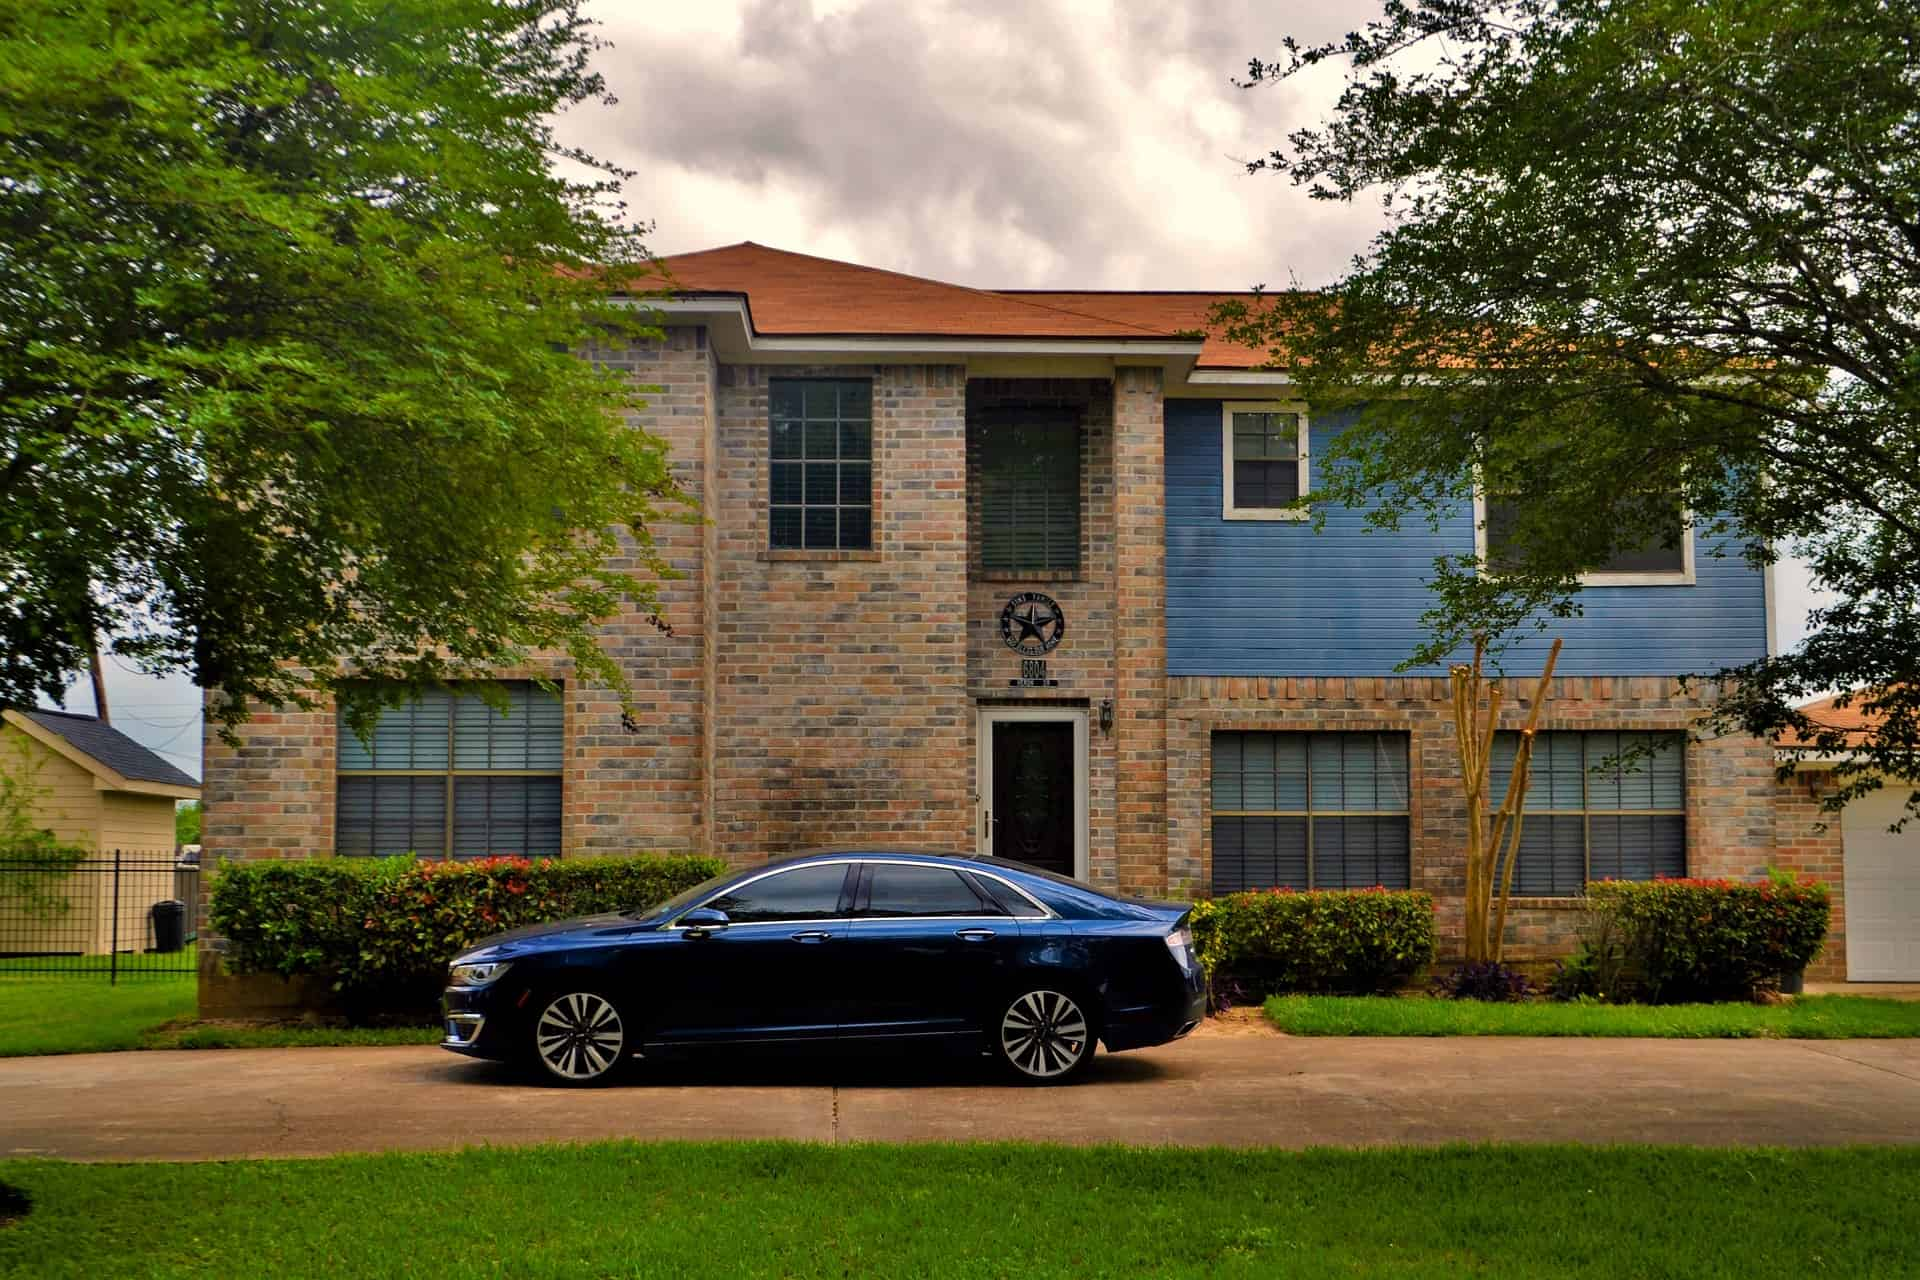 Curb appeal mistake: Car parked in driveway #curbAppealProjects #curbAppeal